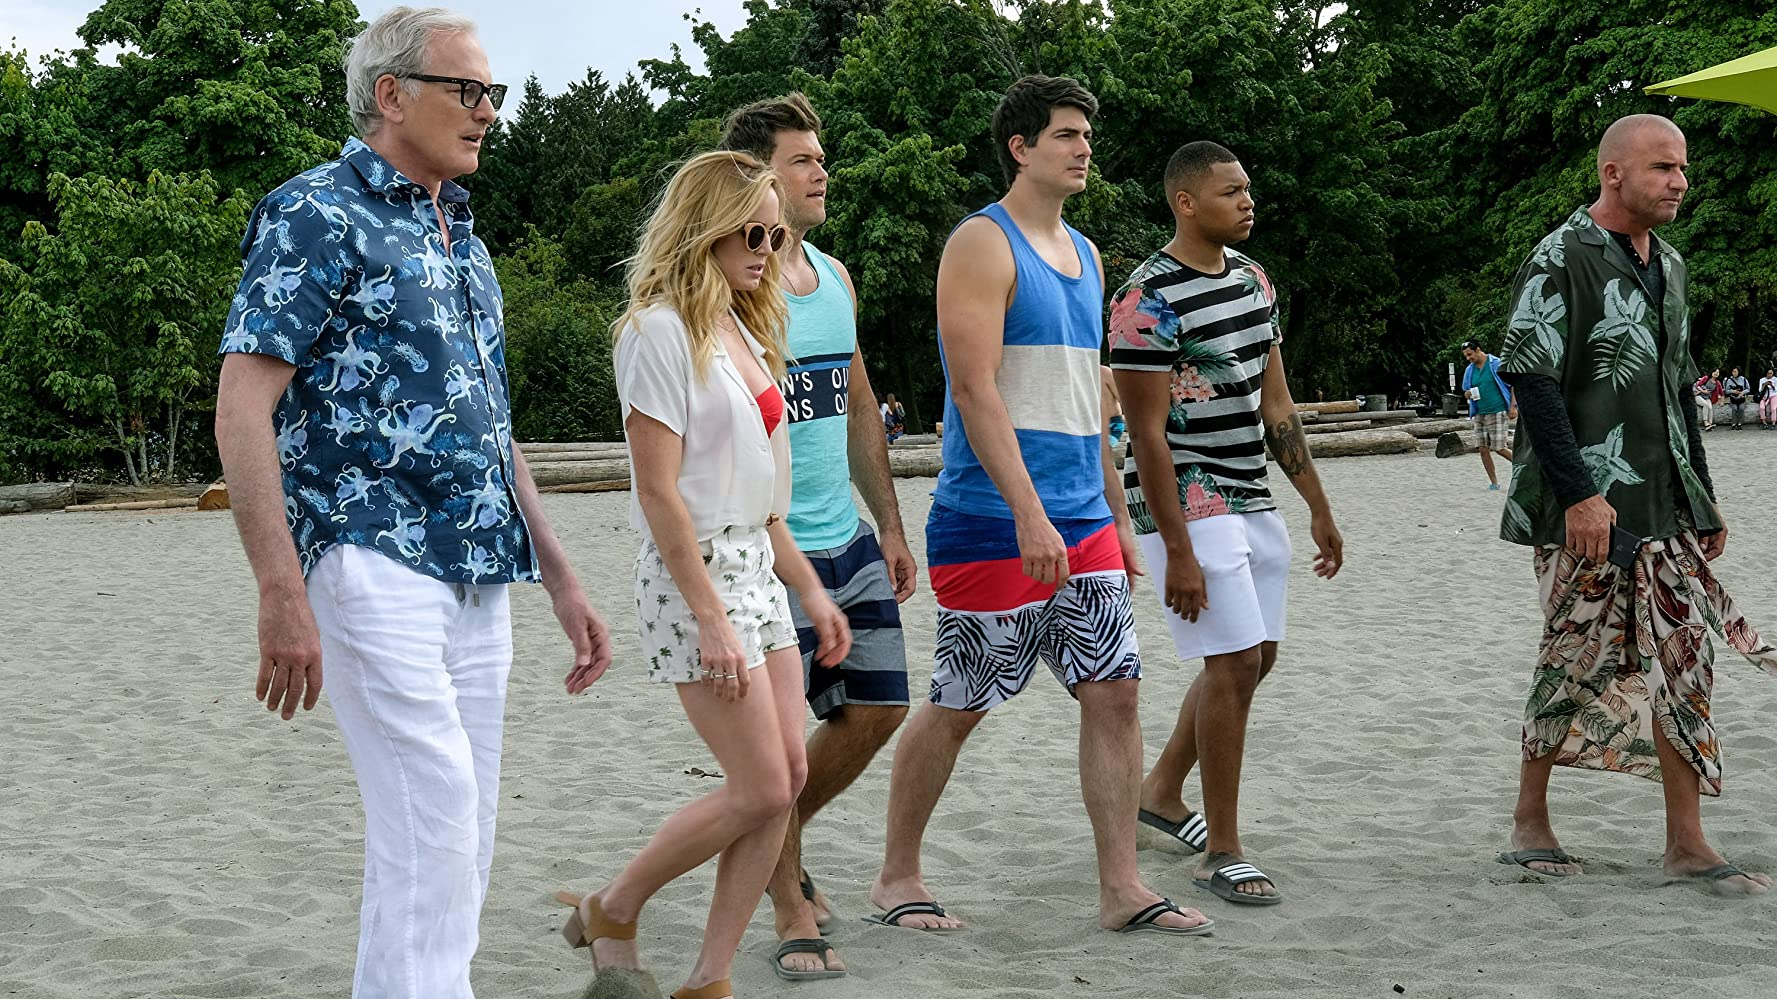 Victor Garber, Dominic Purcell, Brandon Routh, Nick Zano, Caity Lotz, and Franz Drameh in Legends of Tomorrow (2016)